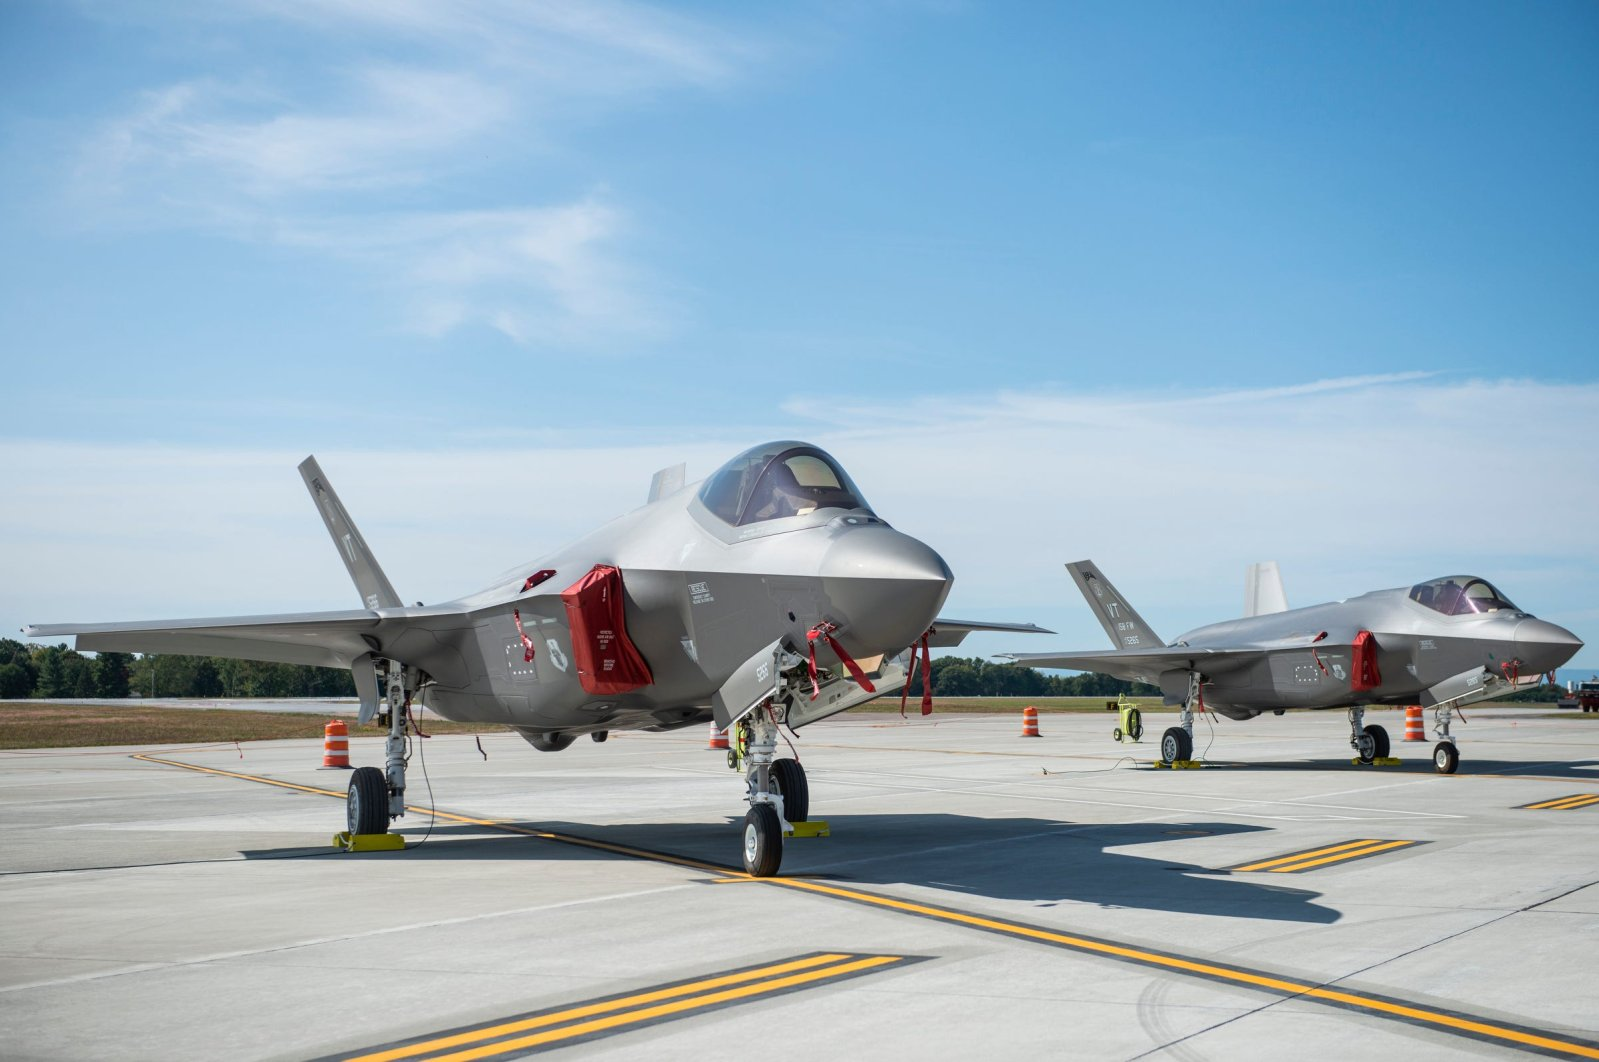 The F-35 jets sit side-by-side on the runway at the Burlington International Airport, Vermont, U.S., Sept. 19, 2019. (Reuters Photo)